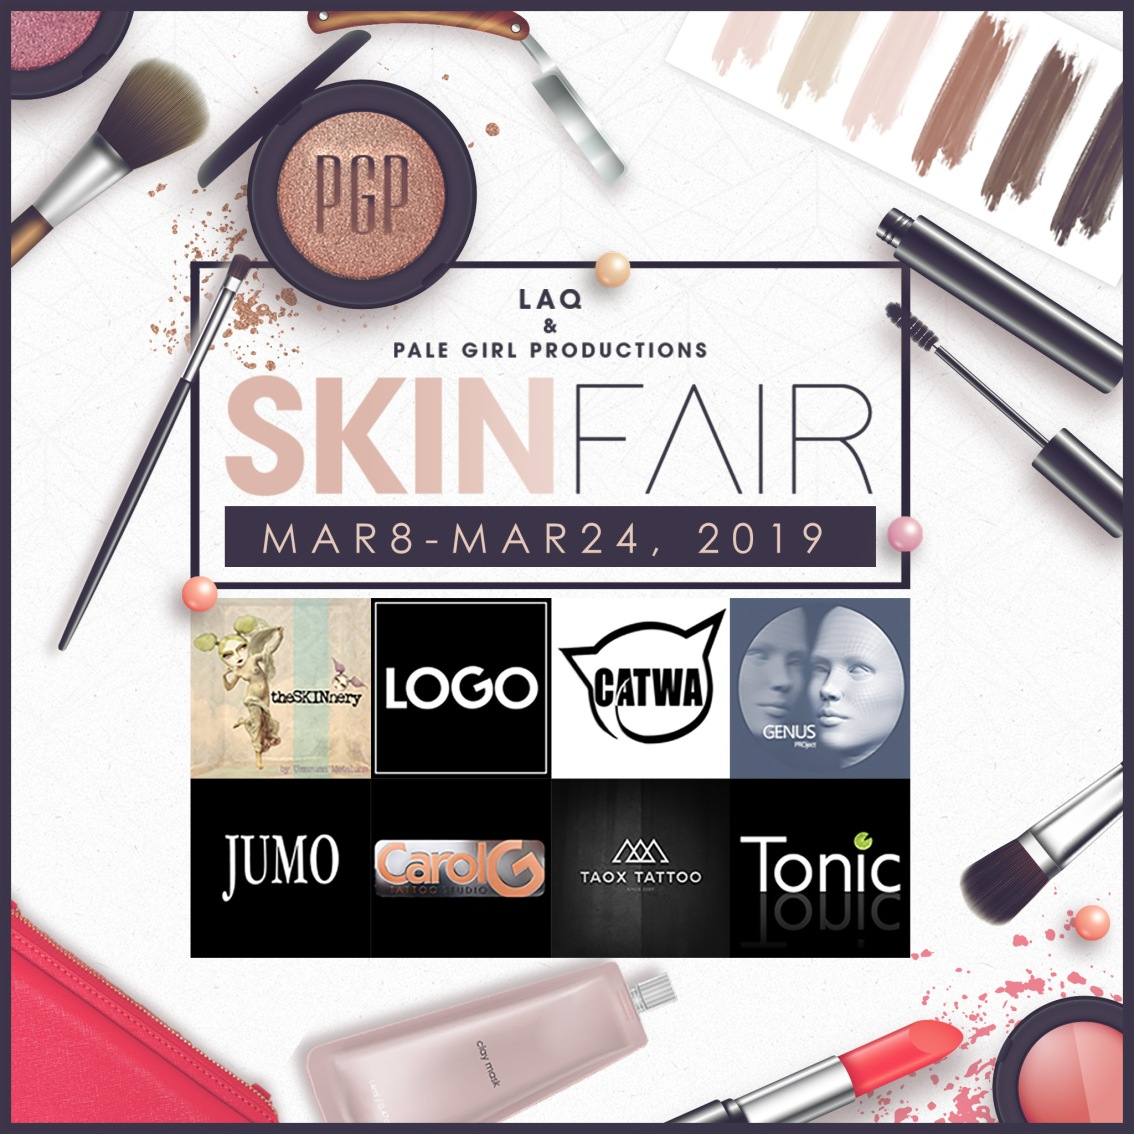 Skin Fair Ends Tomorrow!